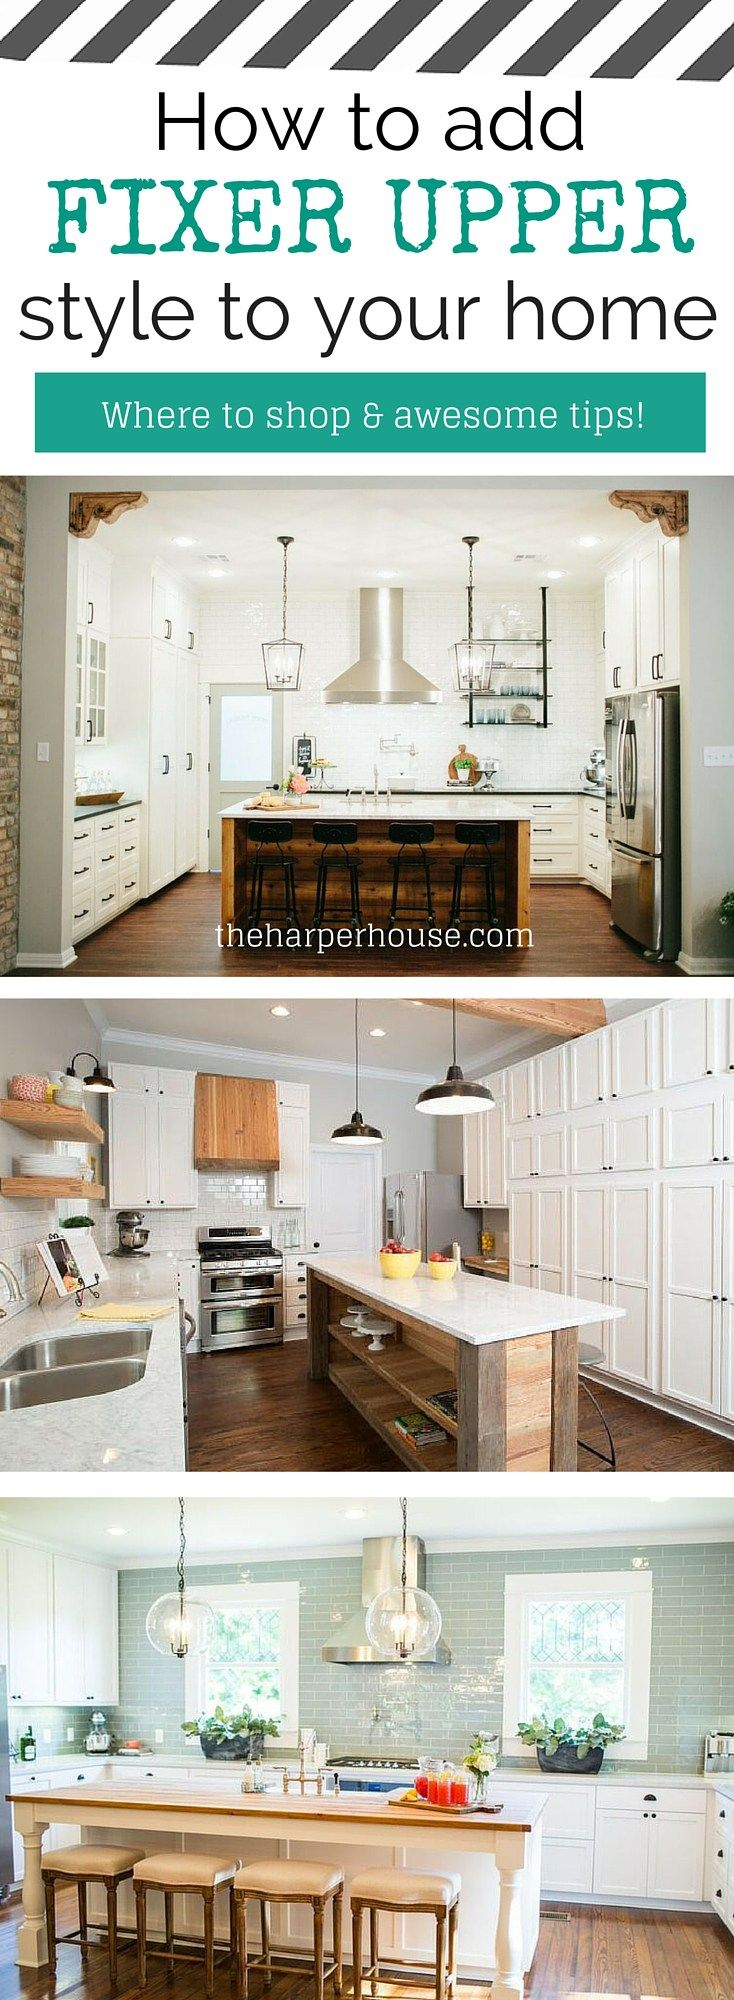 304 best fixer upper style images on pinterest magnolia. Black Bedroom Furniture Sets. Home Design Ideas